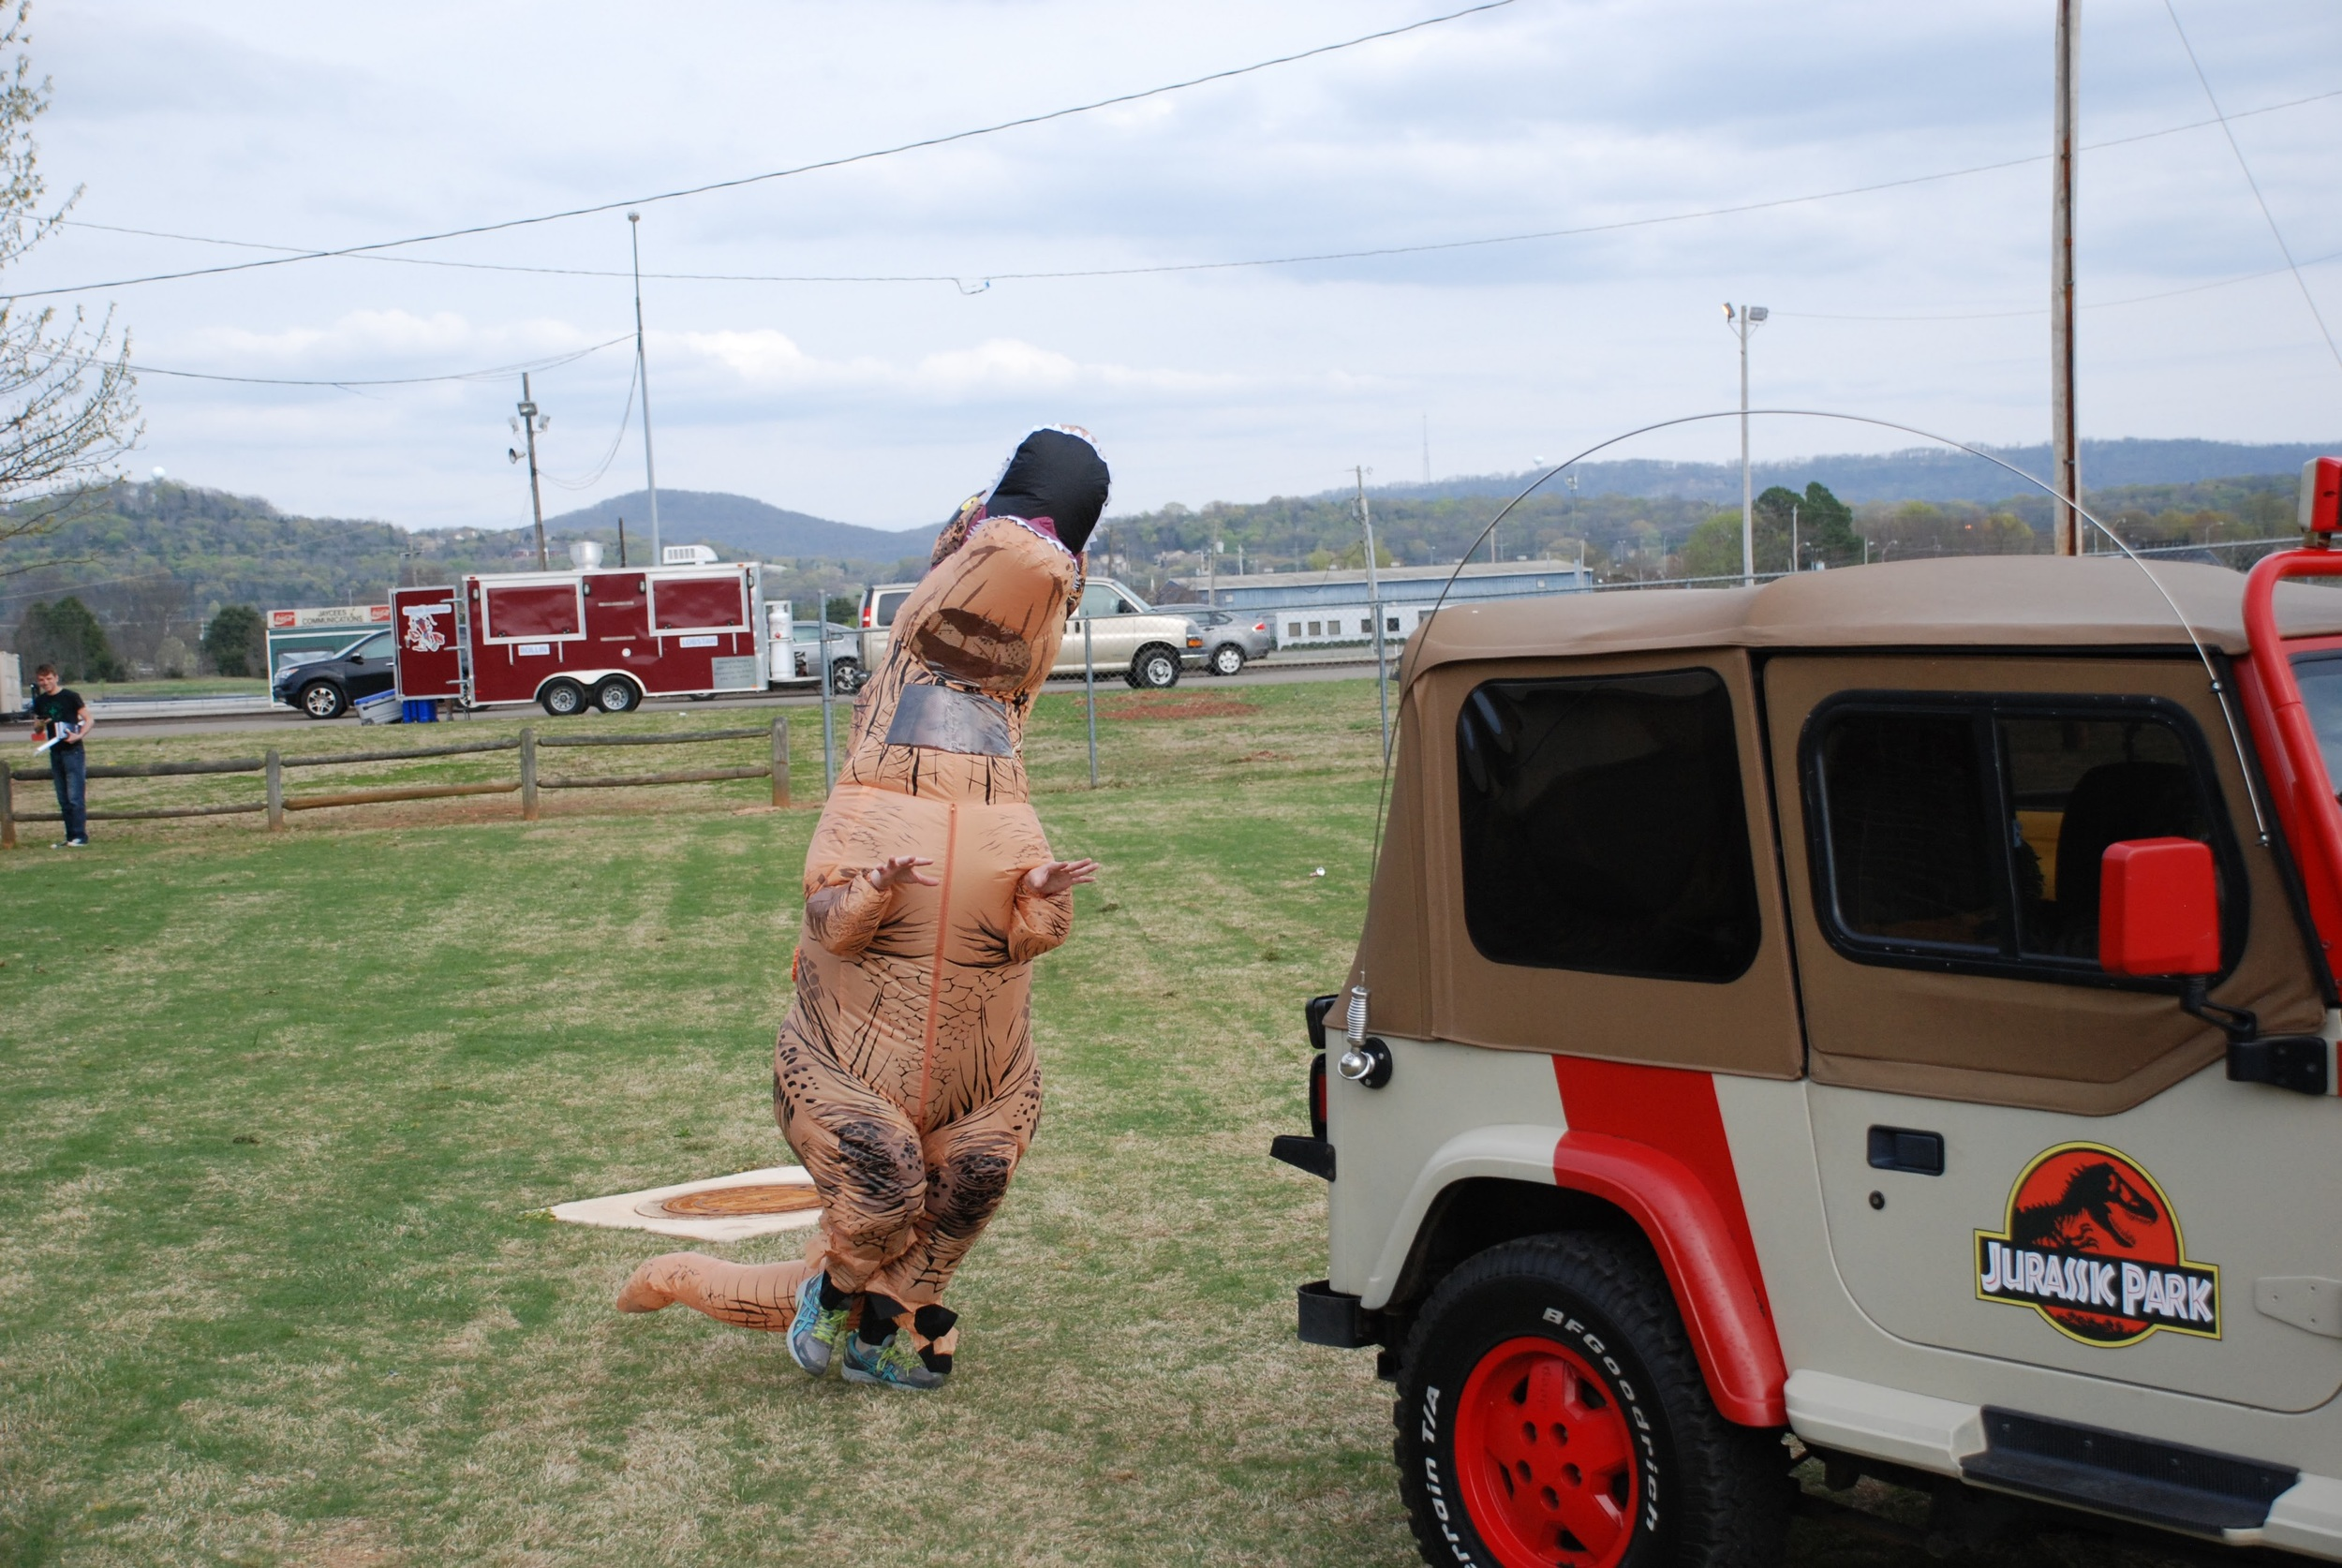 ..while this T-Rex relives some memories from Jurassic Park!